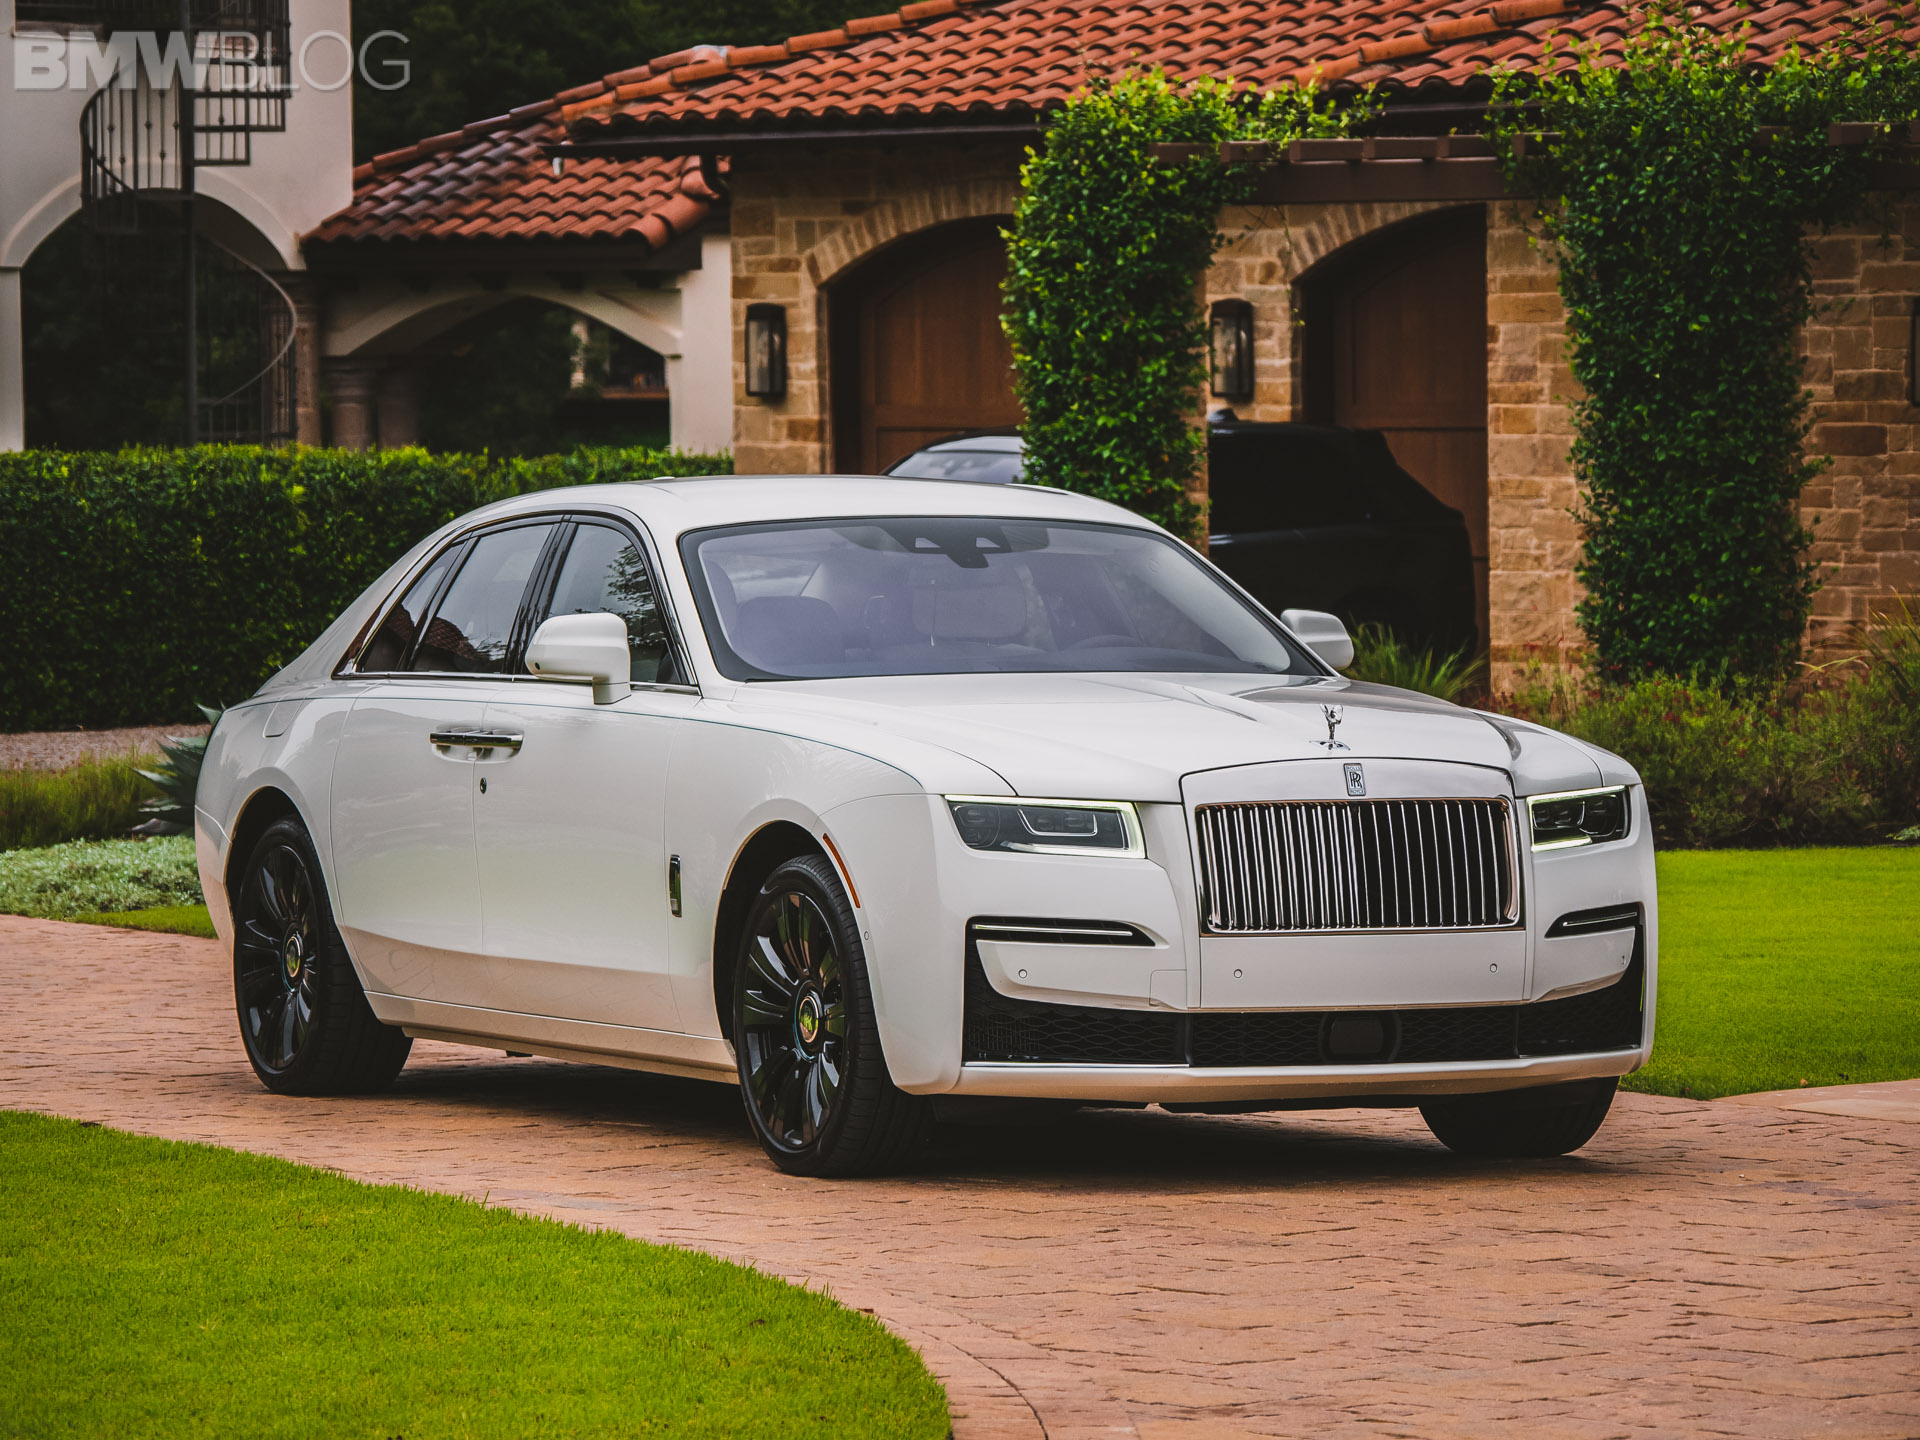 Video: Rolls-Royce Ghost goes for a drive in the UK